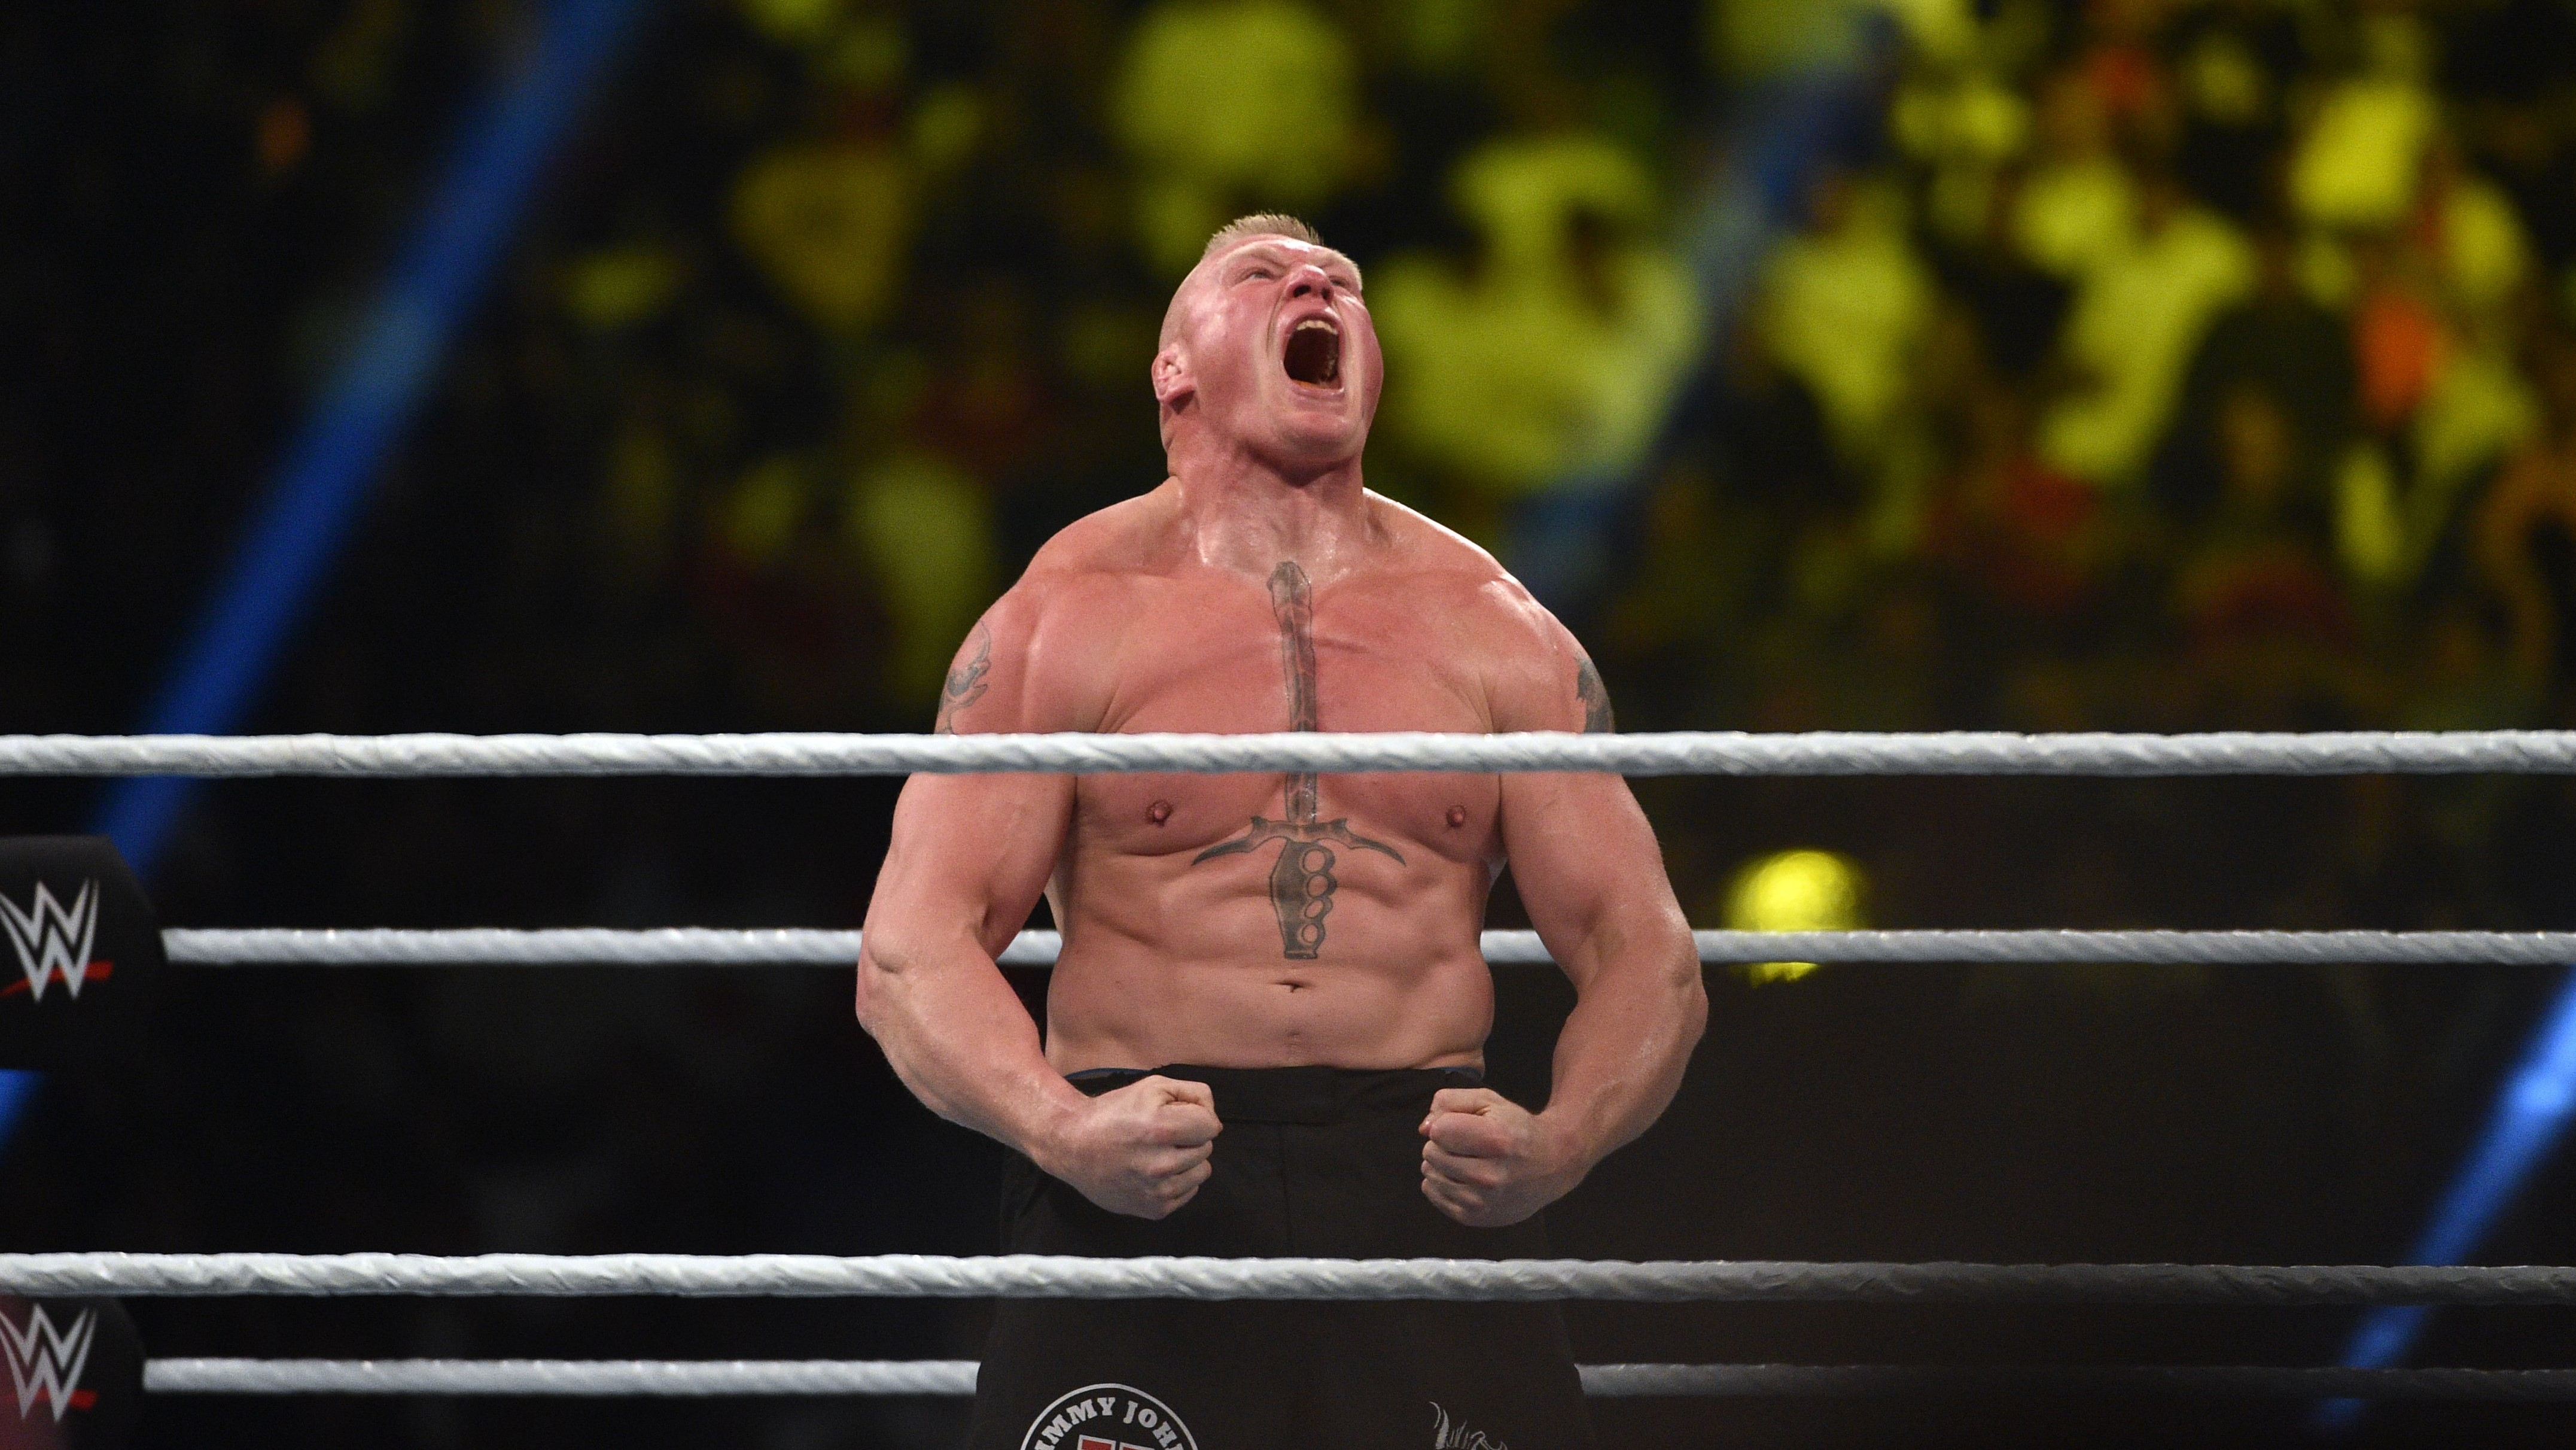 WrestleMania 36 live stream: watch the biggest WWE event of 2020 online for free now